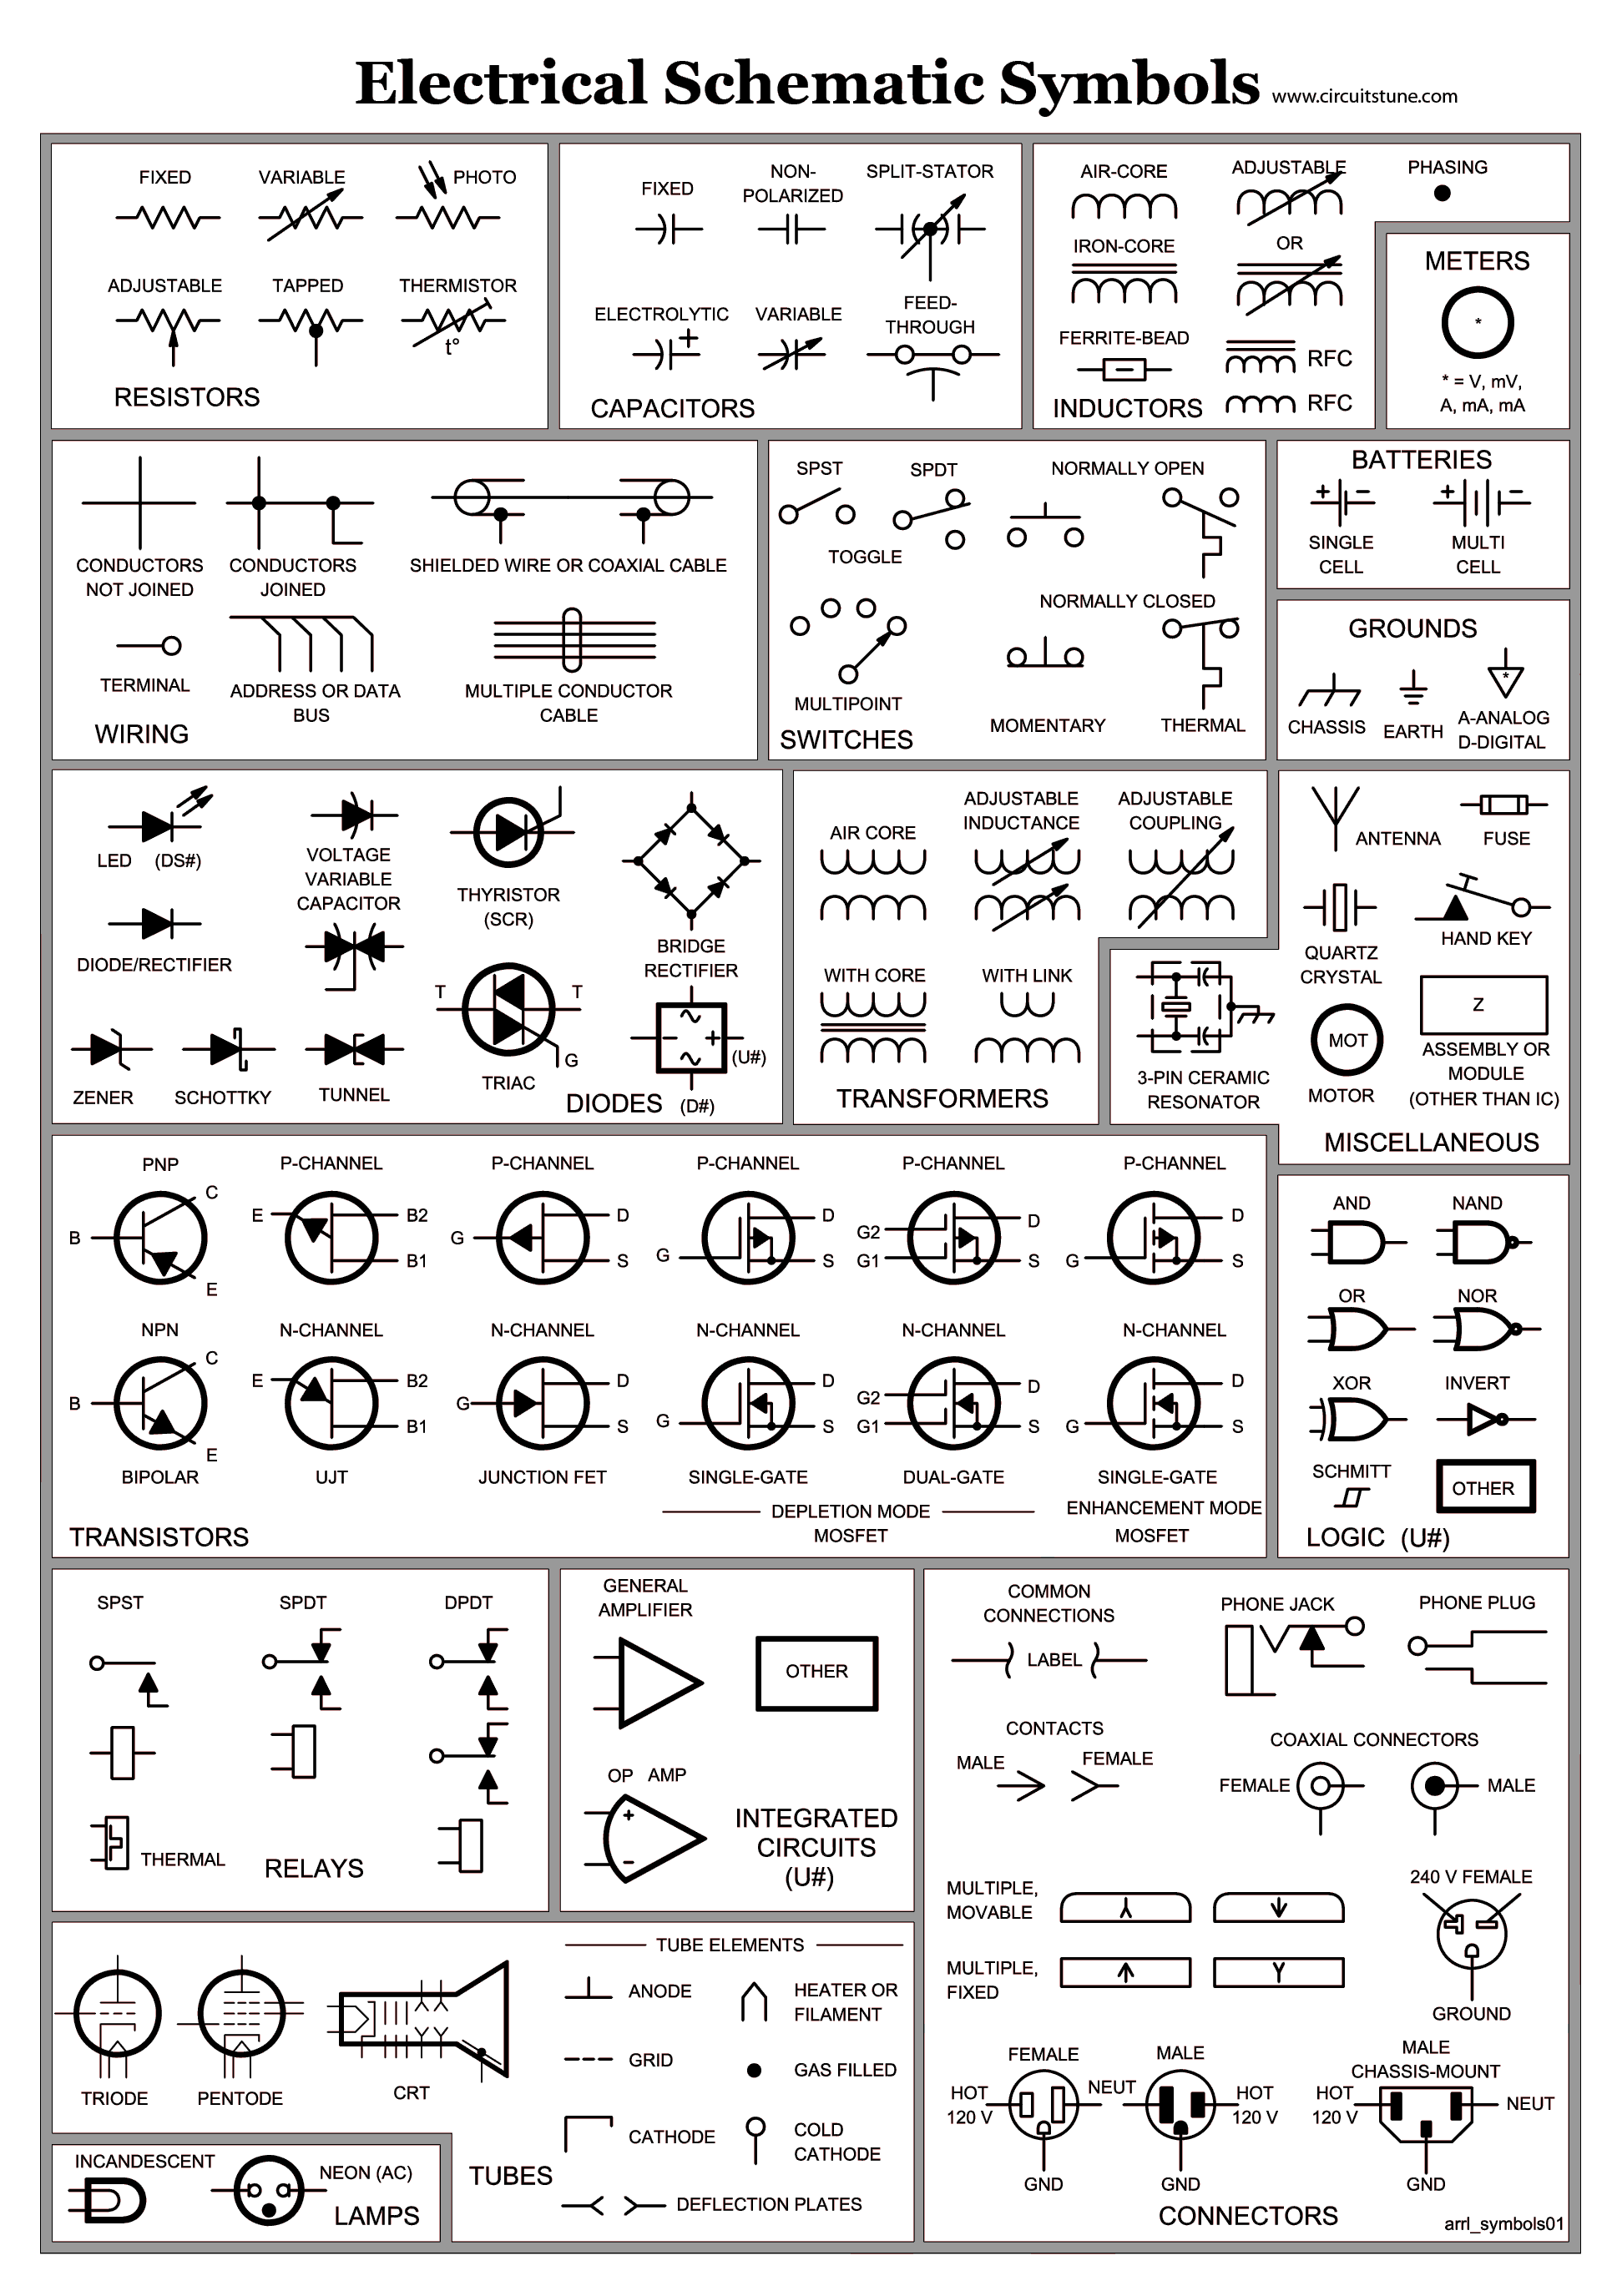 a65d176364692d2ebe913b58a654cfc3 electrical schematic symbols wire diagram symbols automotive wiring schematic symbols at edmiracle.co